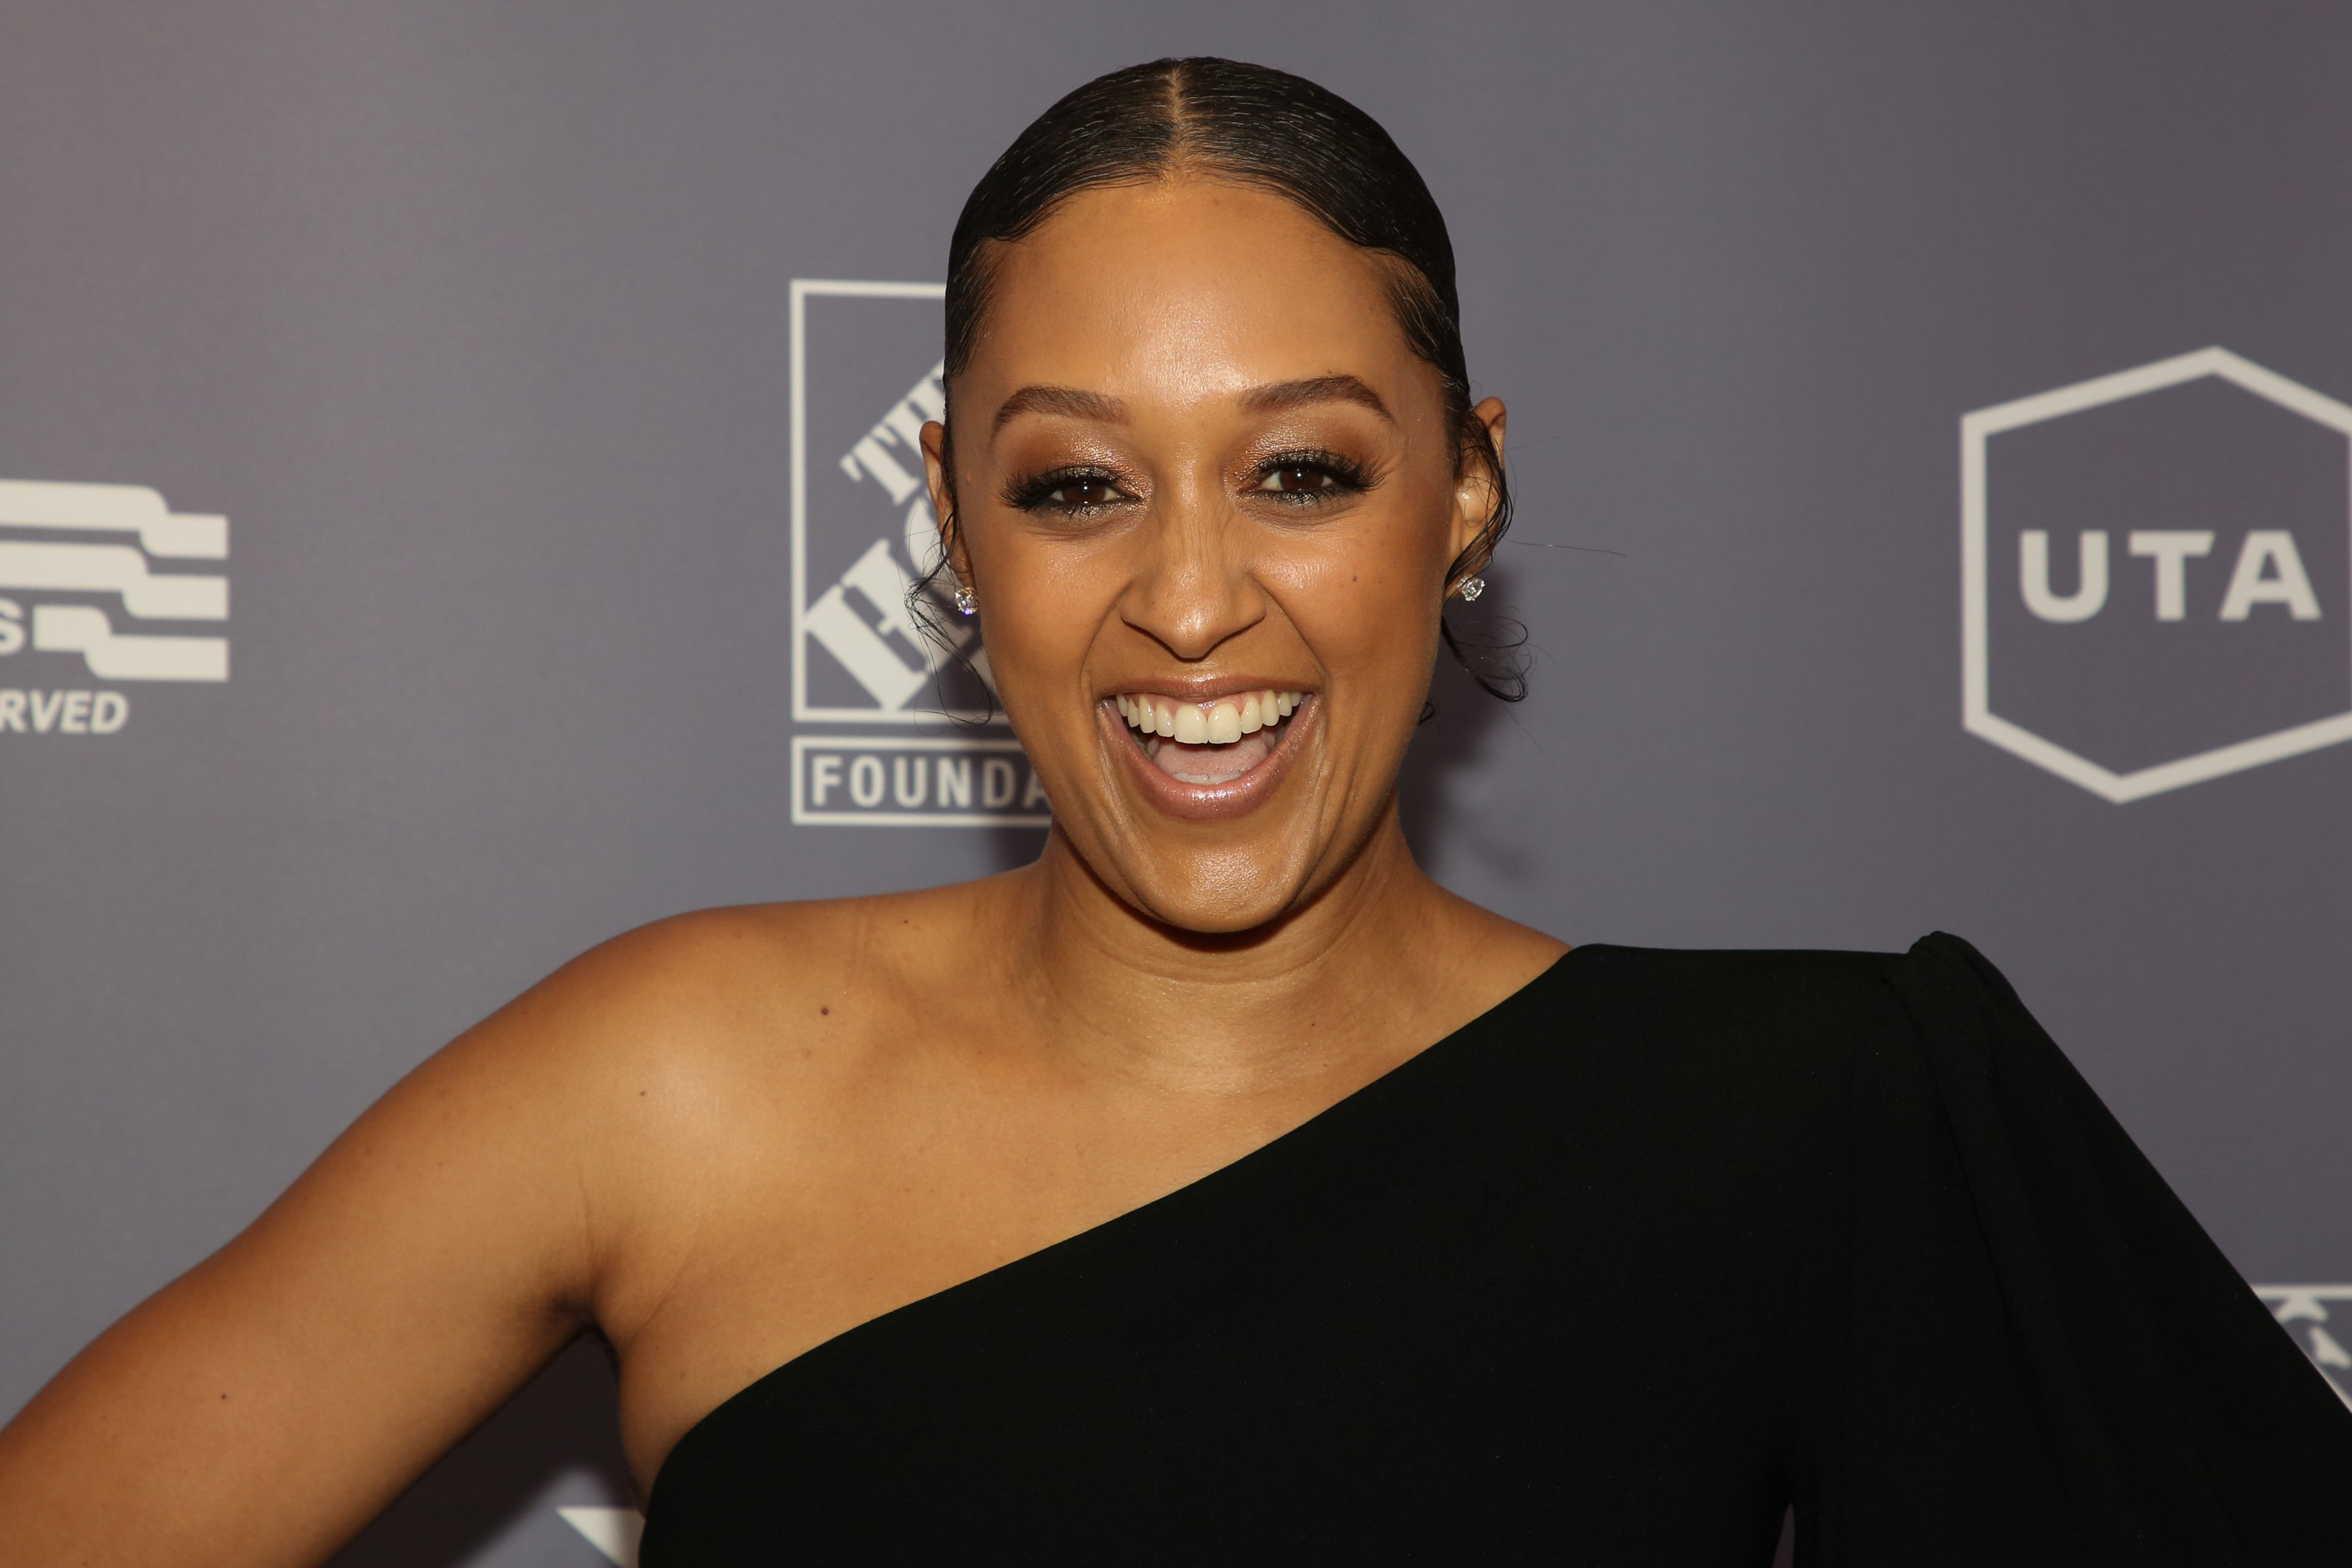 Tia Mowry at the U.S. Vets Salute Gala  in Beverly Hills, California on November 5, 2019   Photo: Getty Images